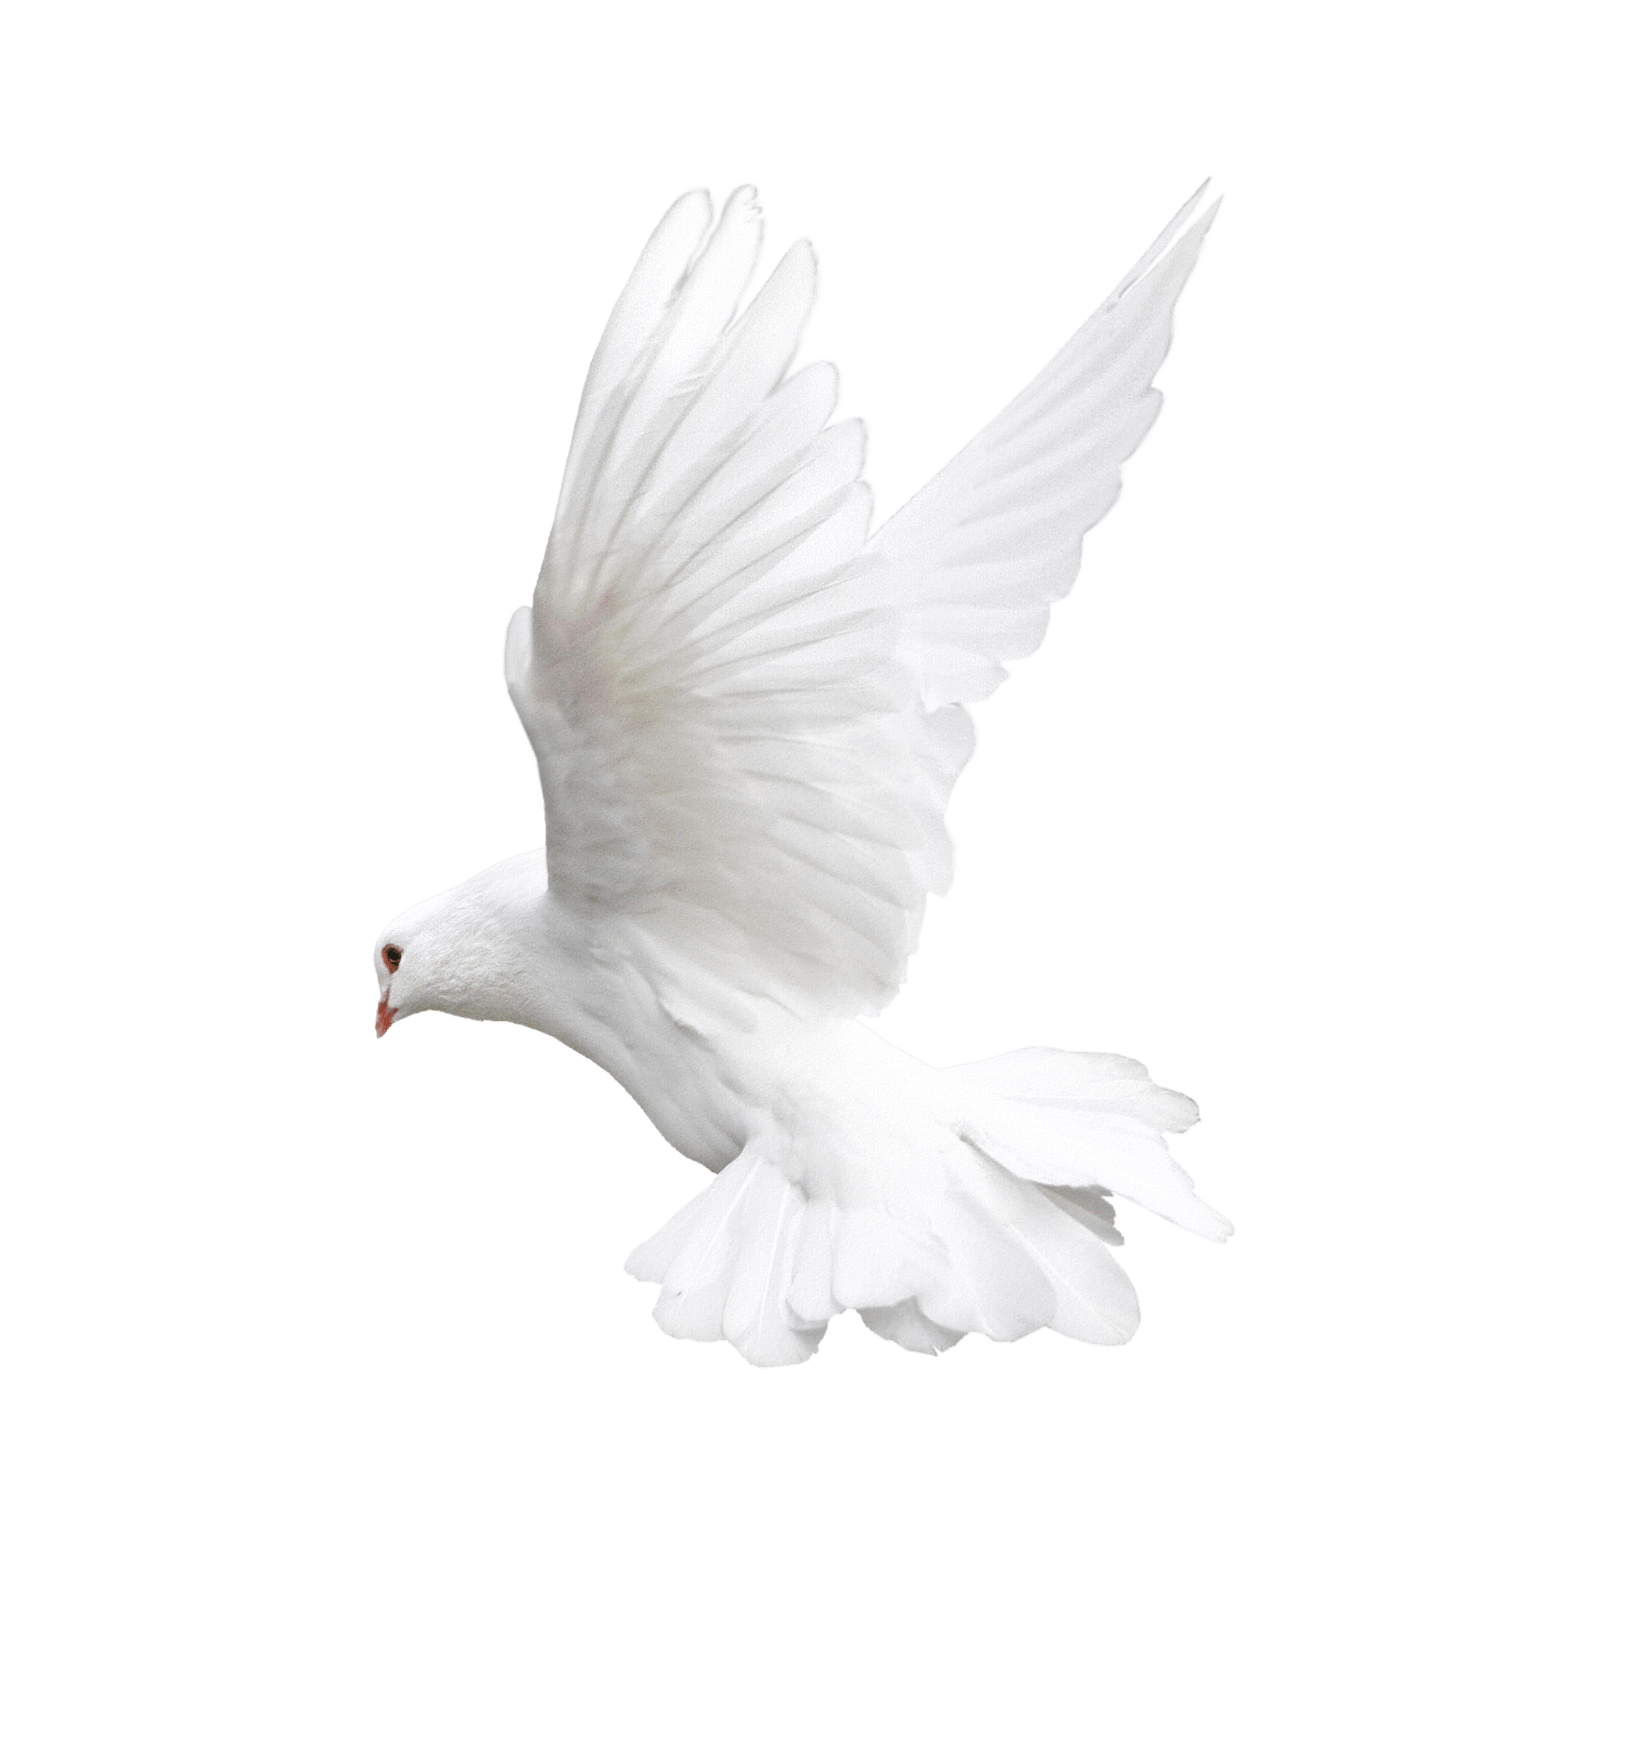 White Flying Pigeon Png Image Png Image - Pigeon, Transparent background PNG HD thumbnail